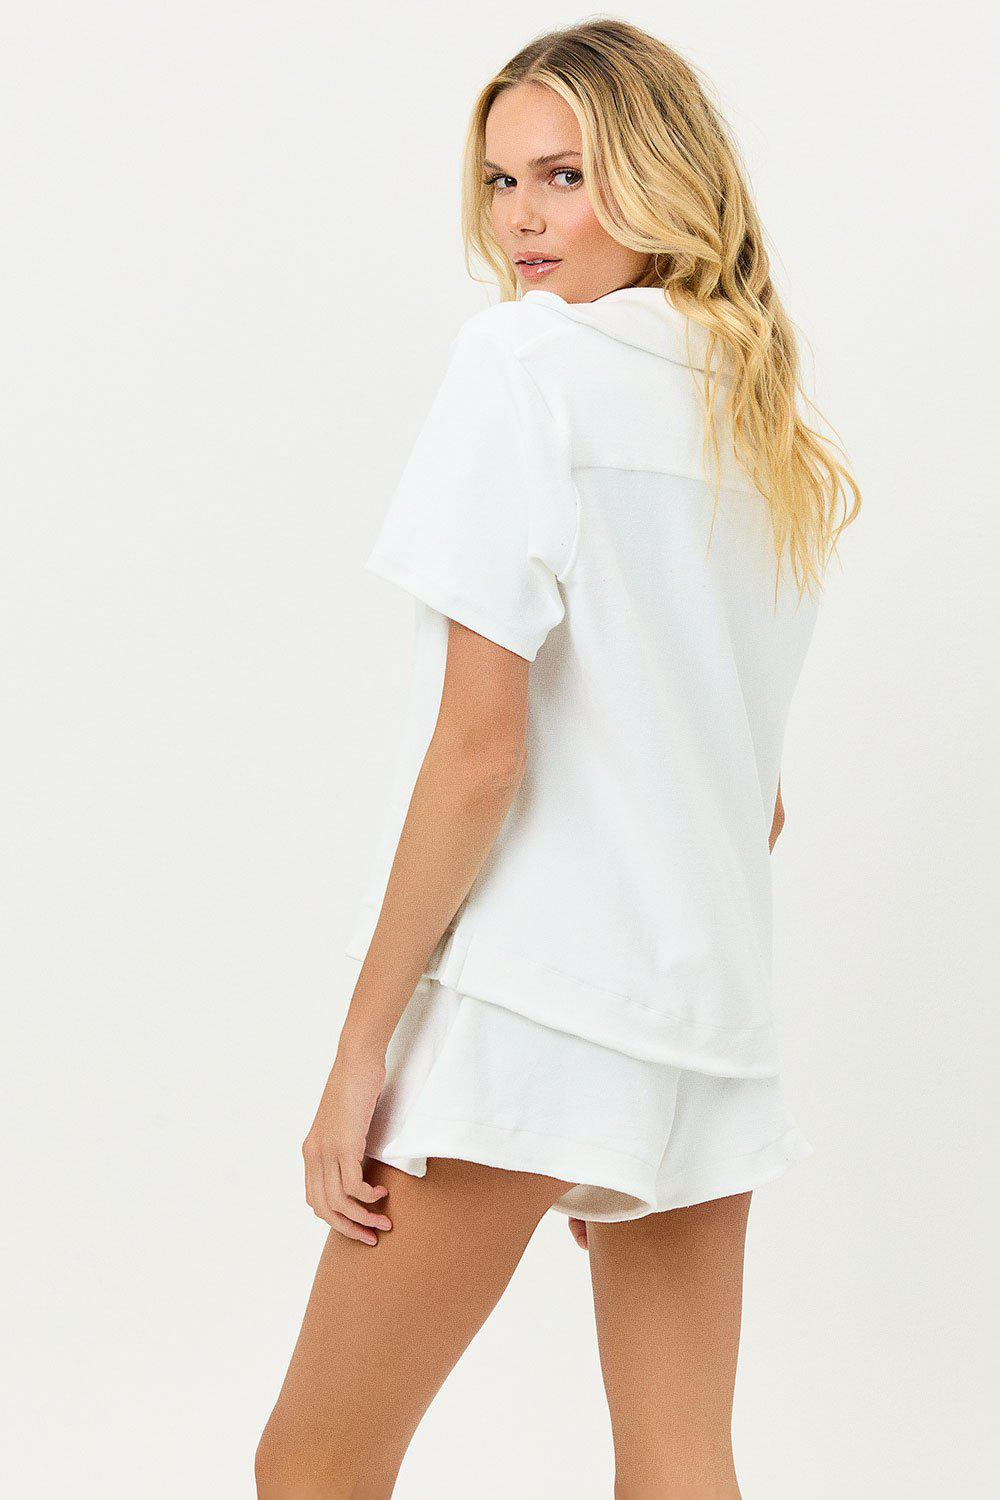 Coco Terry Button Up Shirt - White 3